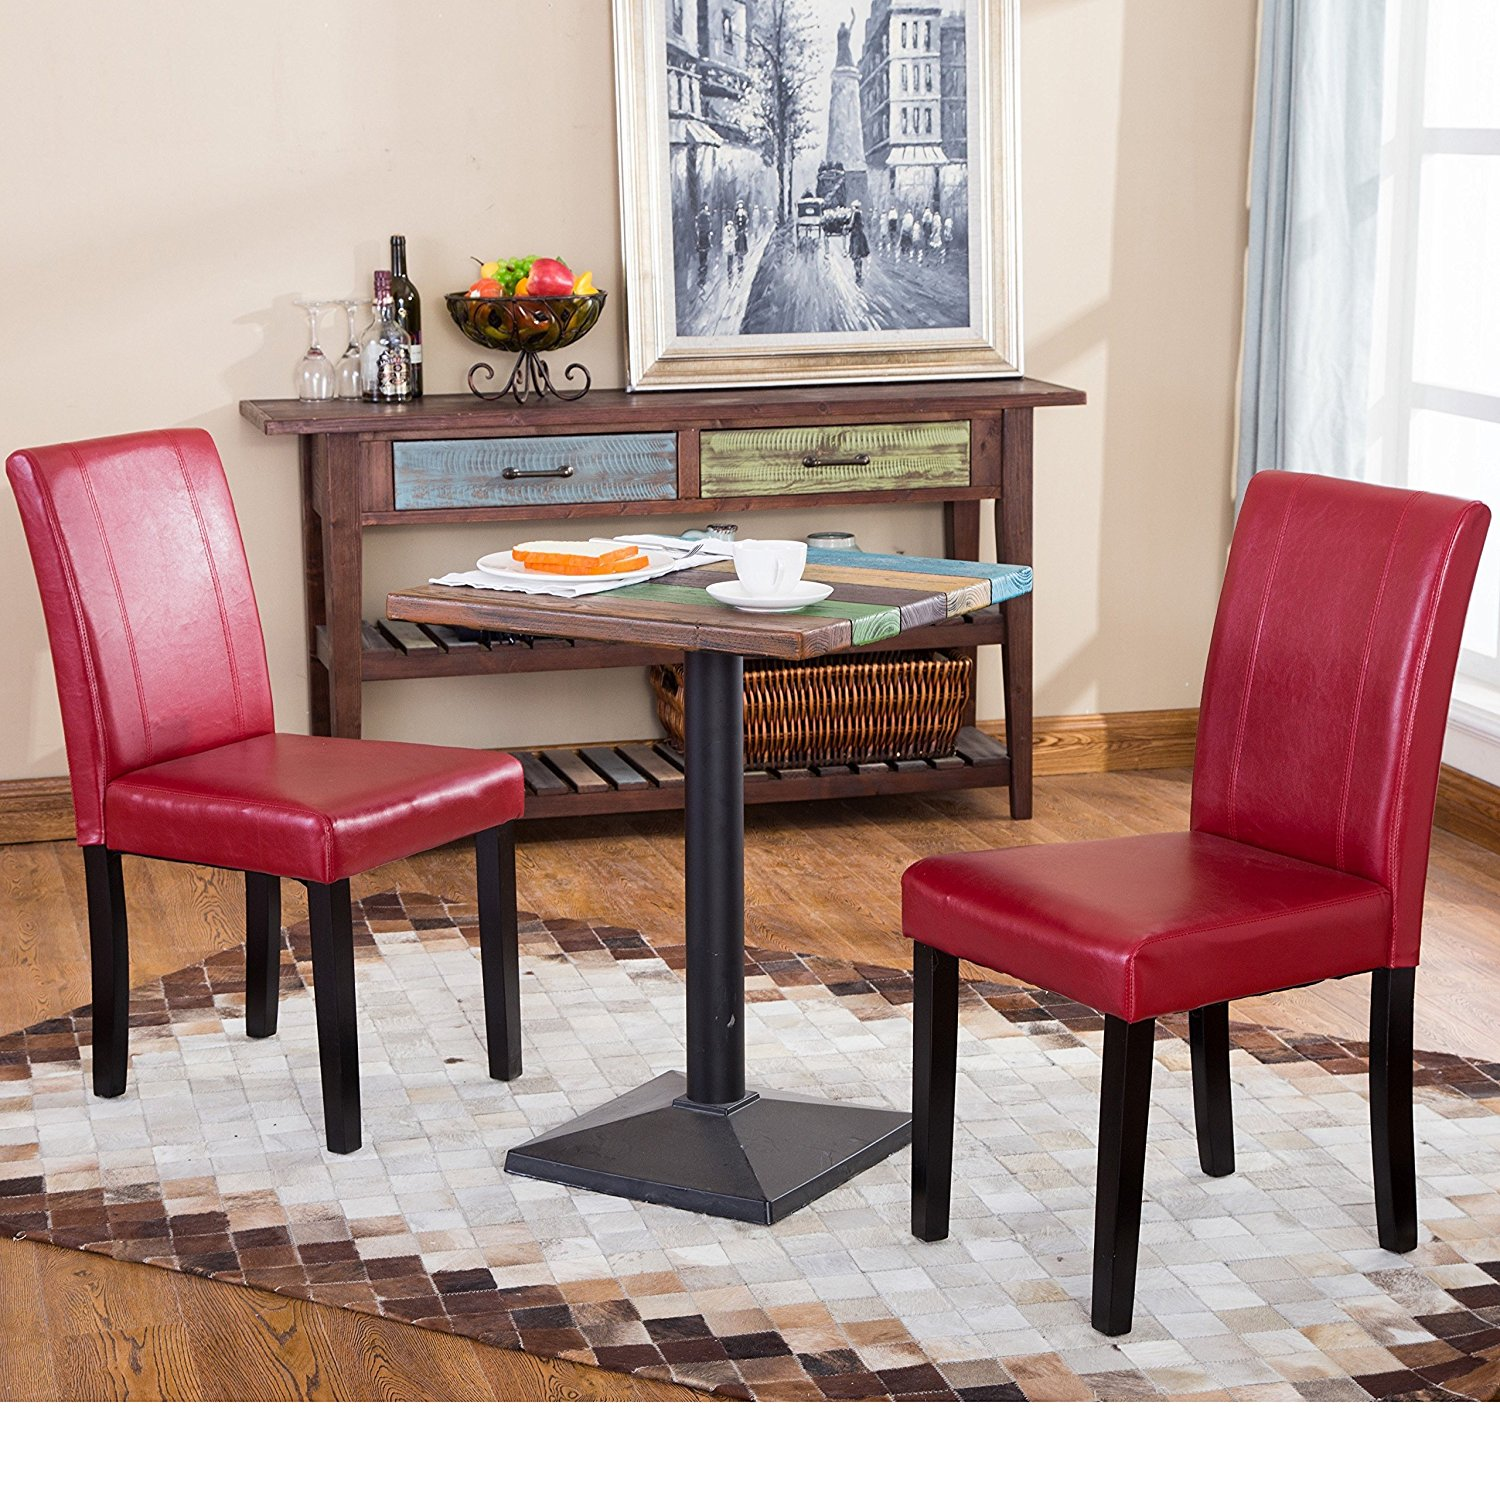 Table And Black Chairs 2 Piece Red Dining Faux Leather Wood Material Contemporary Casual Urban Style